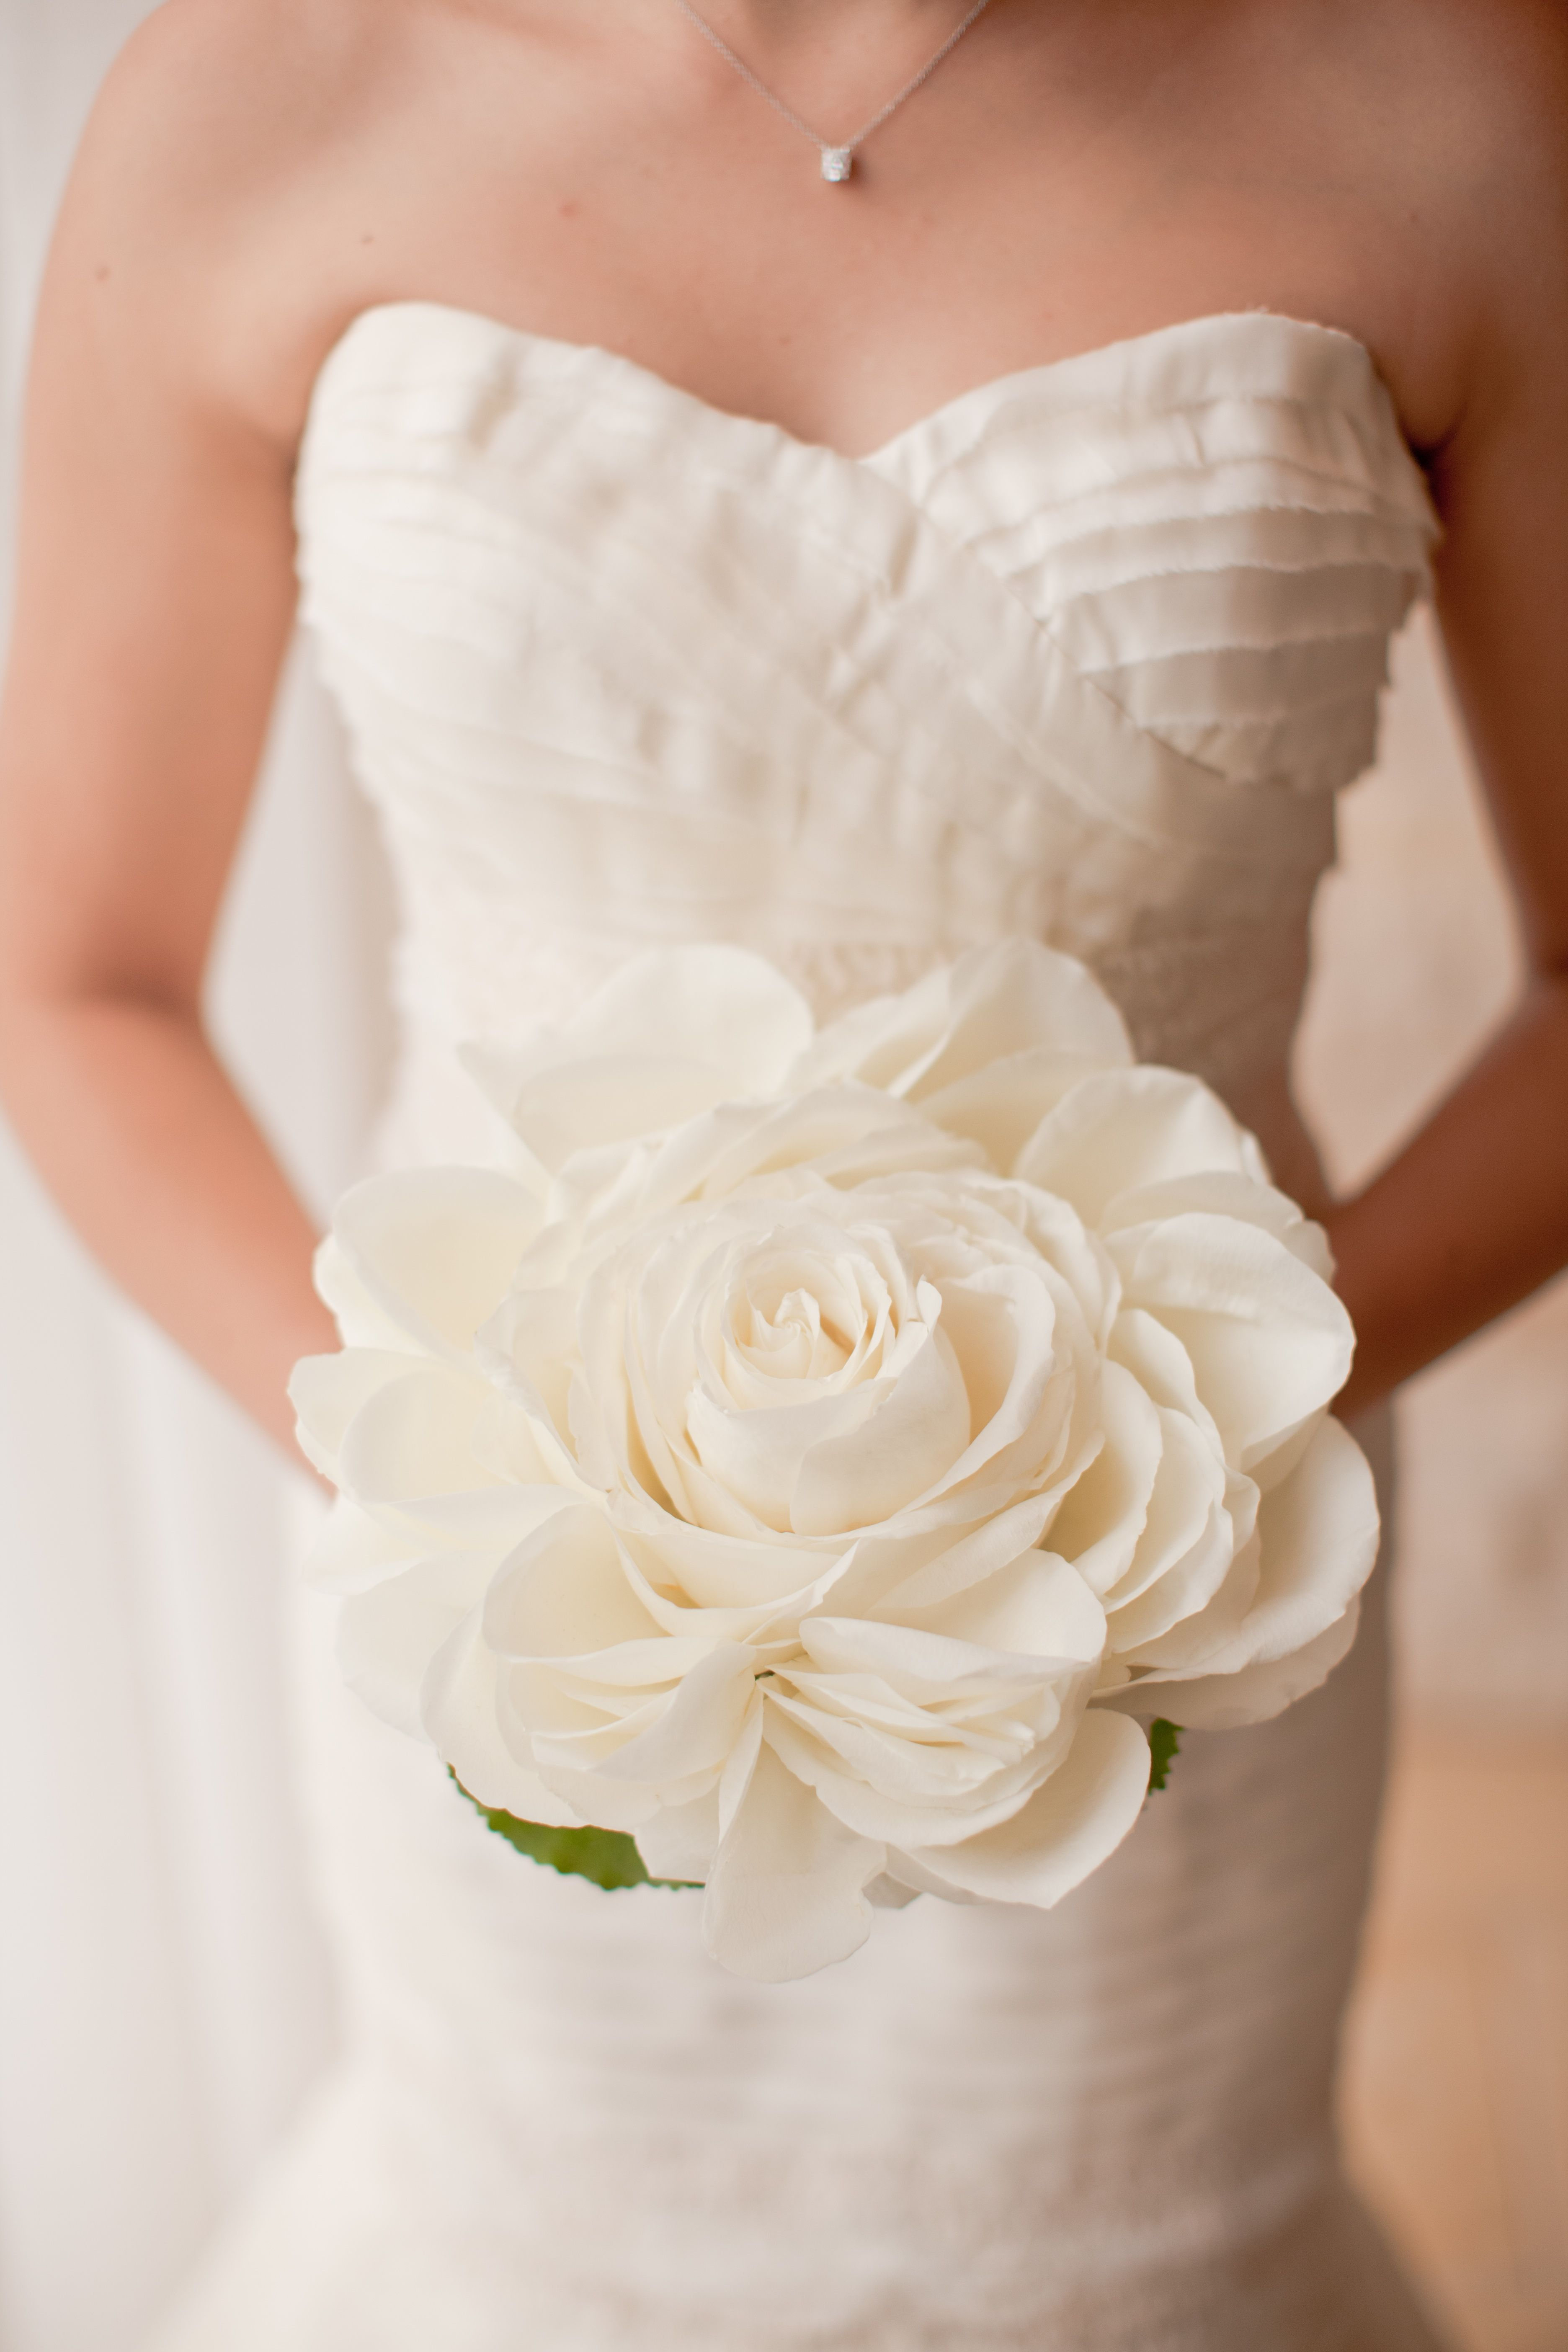 Modern grand rose bouquet nancyliuchin weddings bouquet ideas glamelia bouquetcomposite bouquets love this idea individual flower petals are rearranged to look like one big flower for a bouquet izmirmasajfo Choice Image